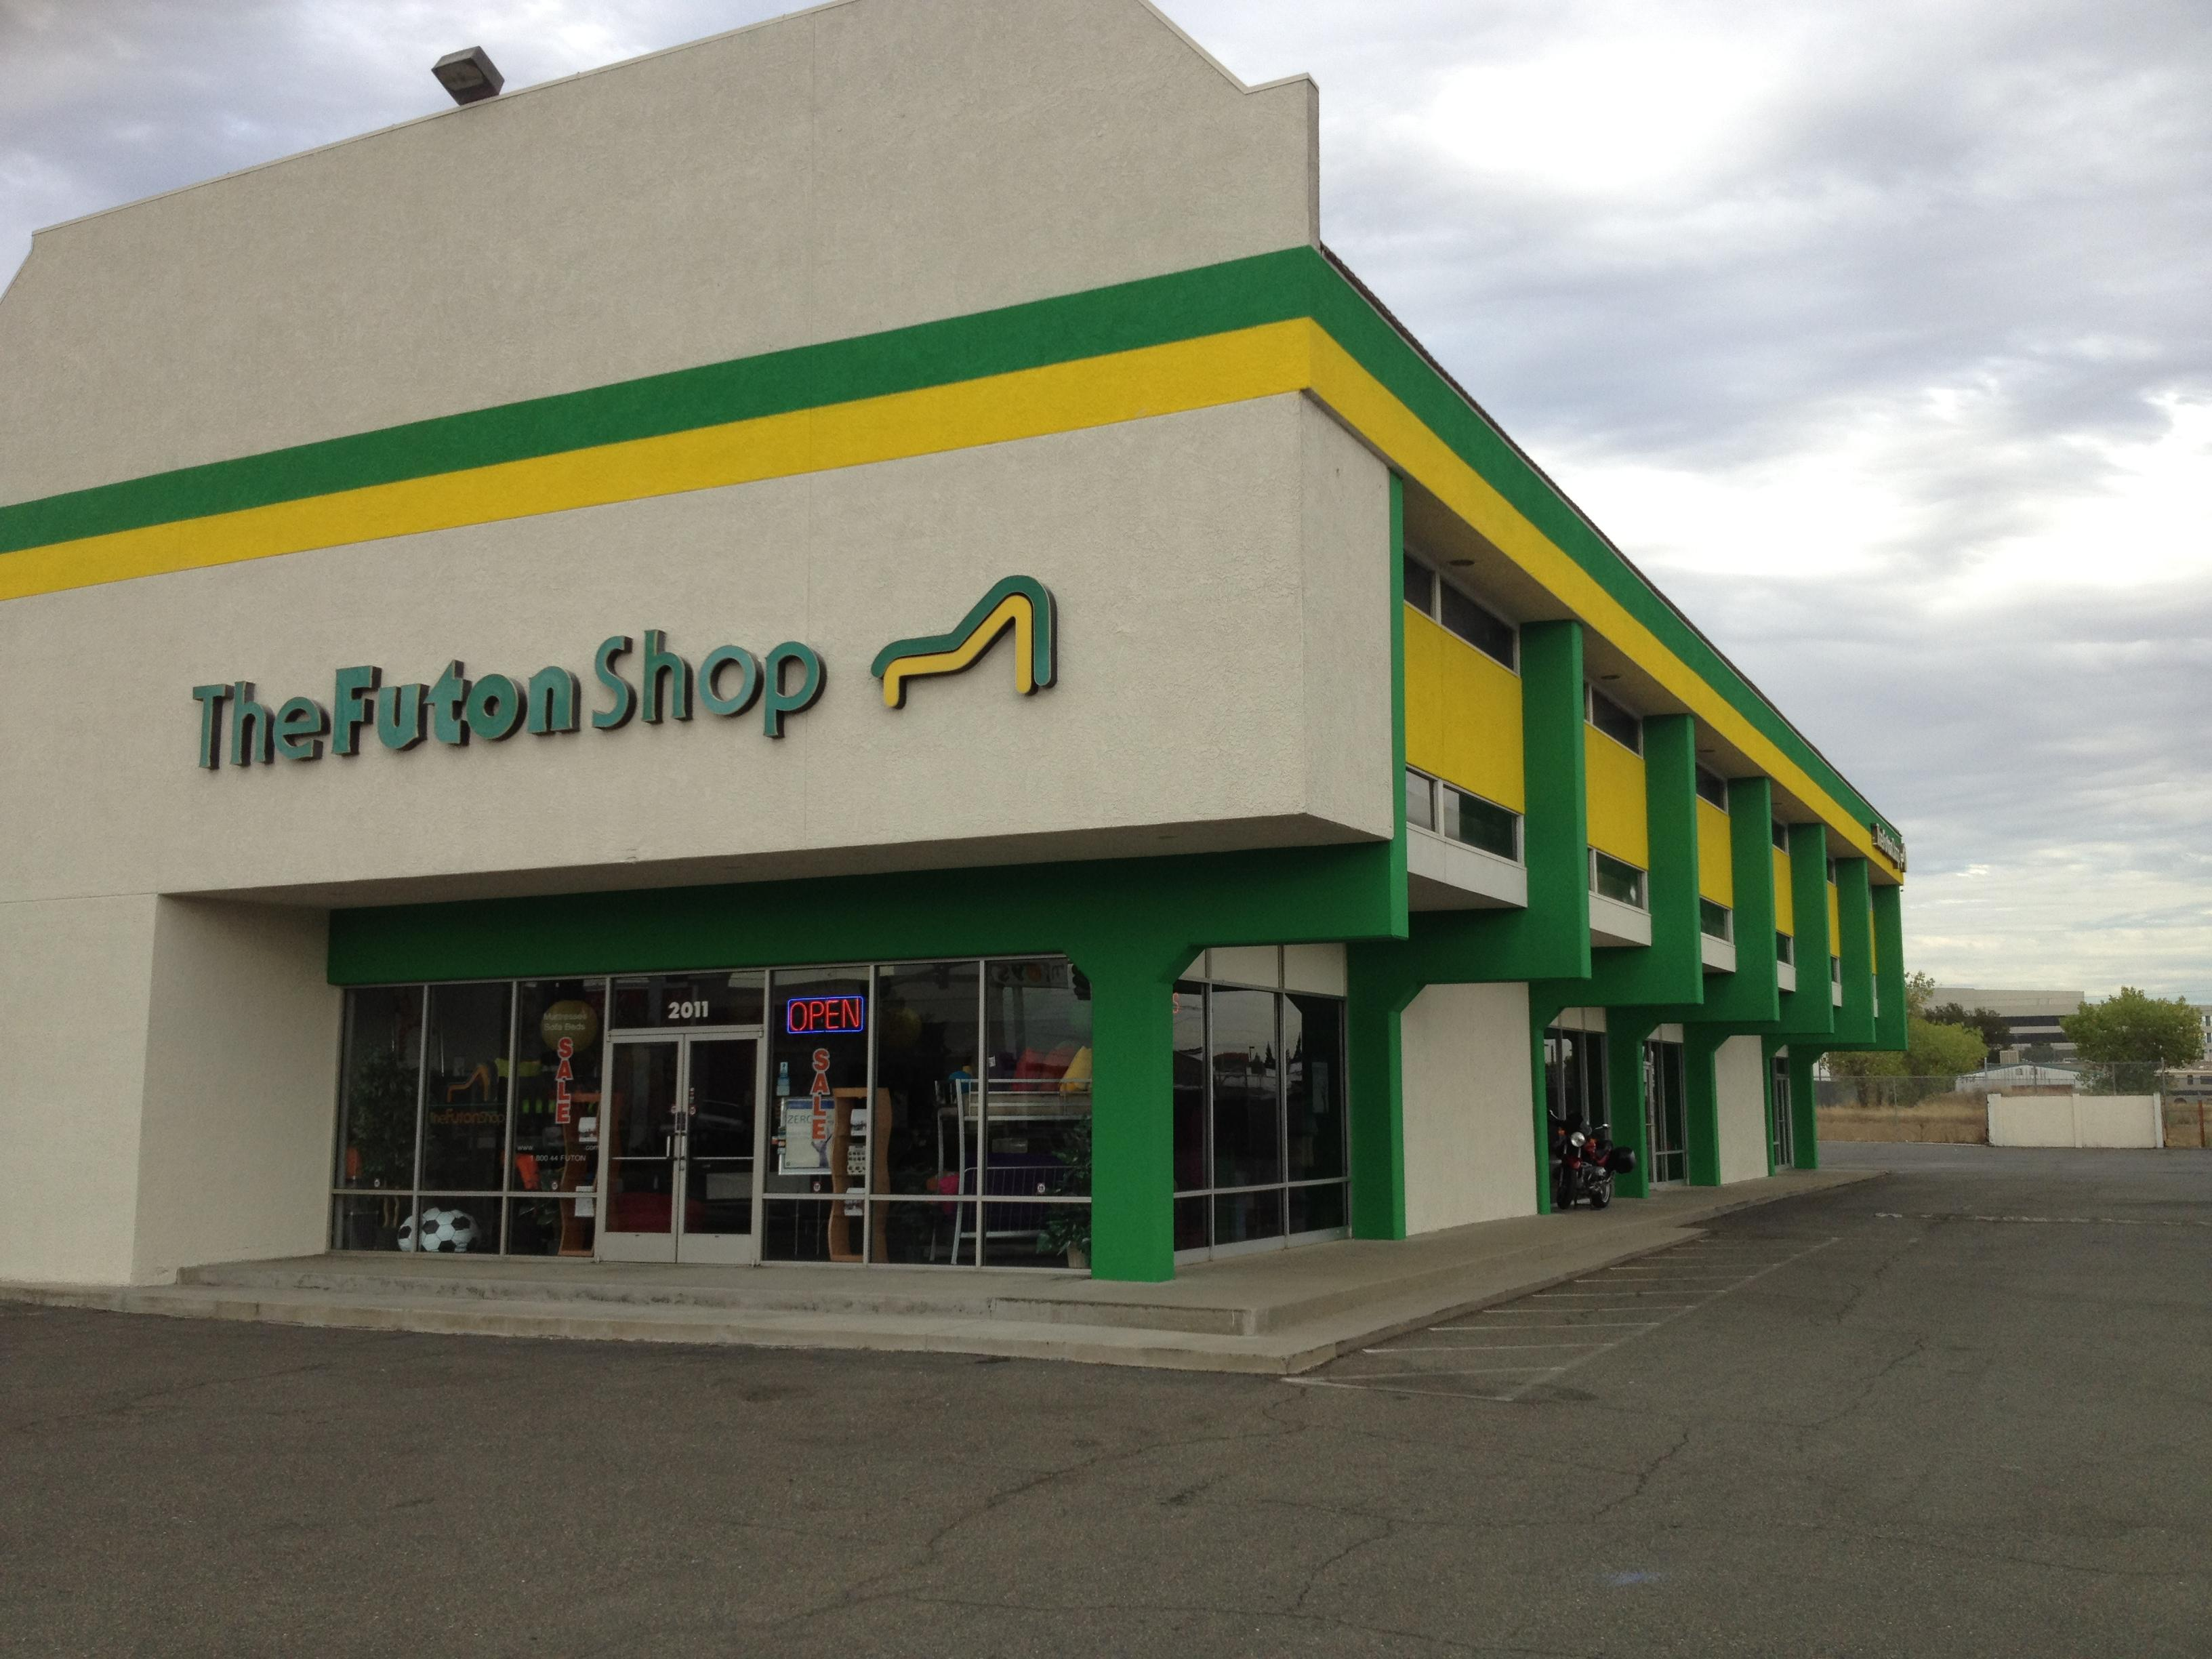 Furniture Stores In Elk Grove Ca ... » California » Sacramento » Bedroom Furniture » The Futon Shop